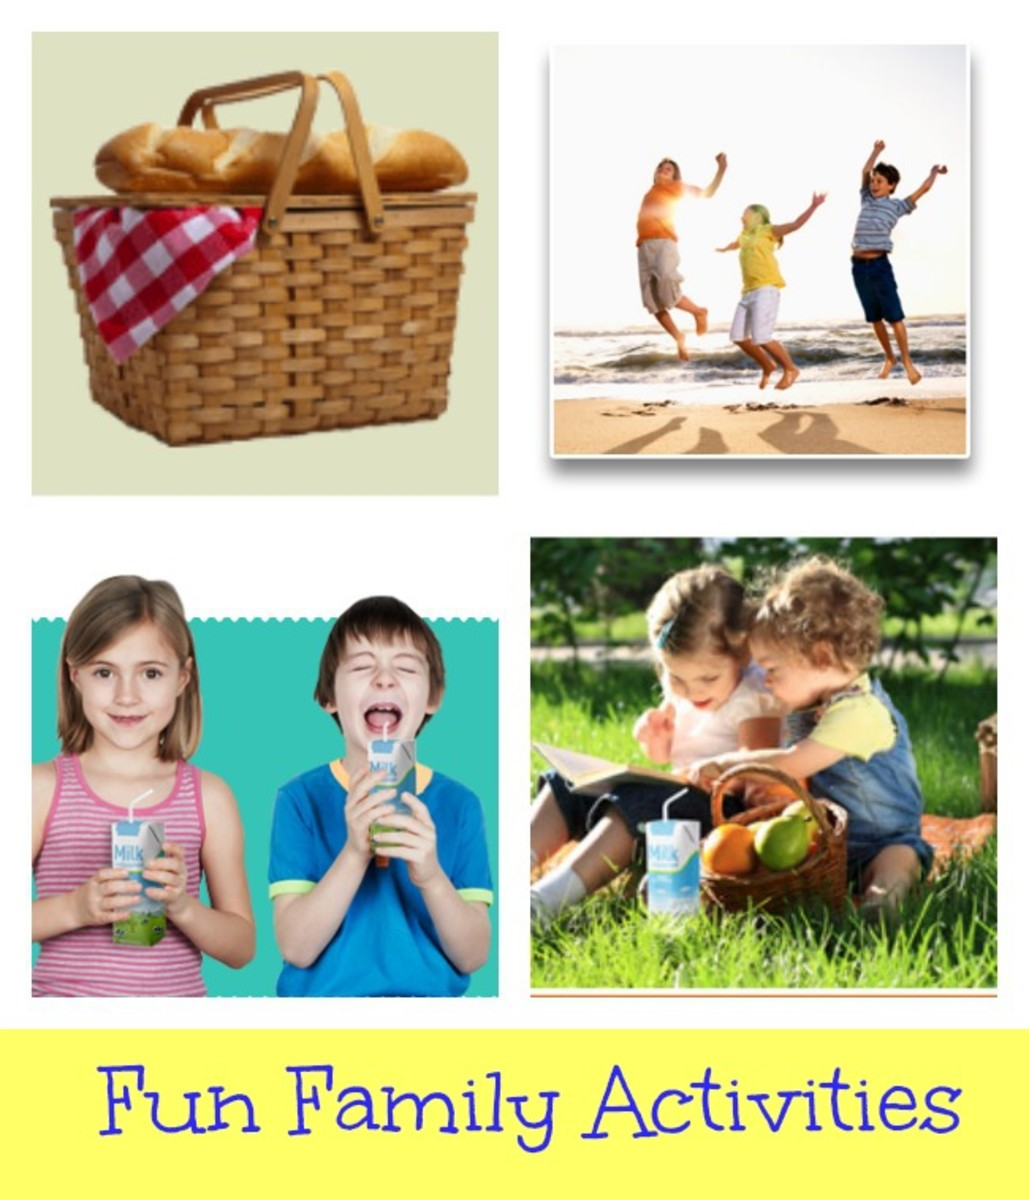 Family Activities: Tips And Ideas For Fun Family Activities